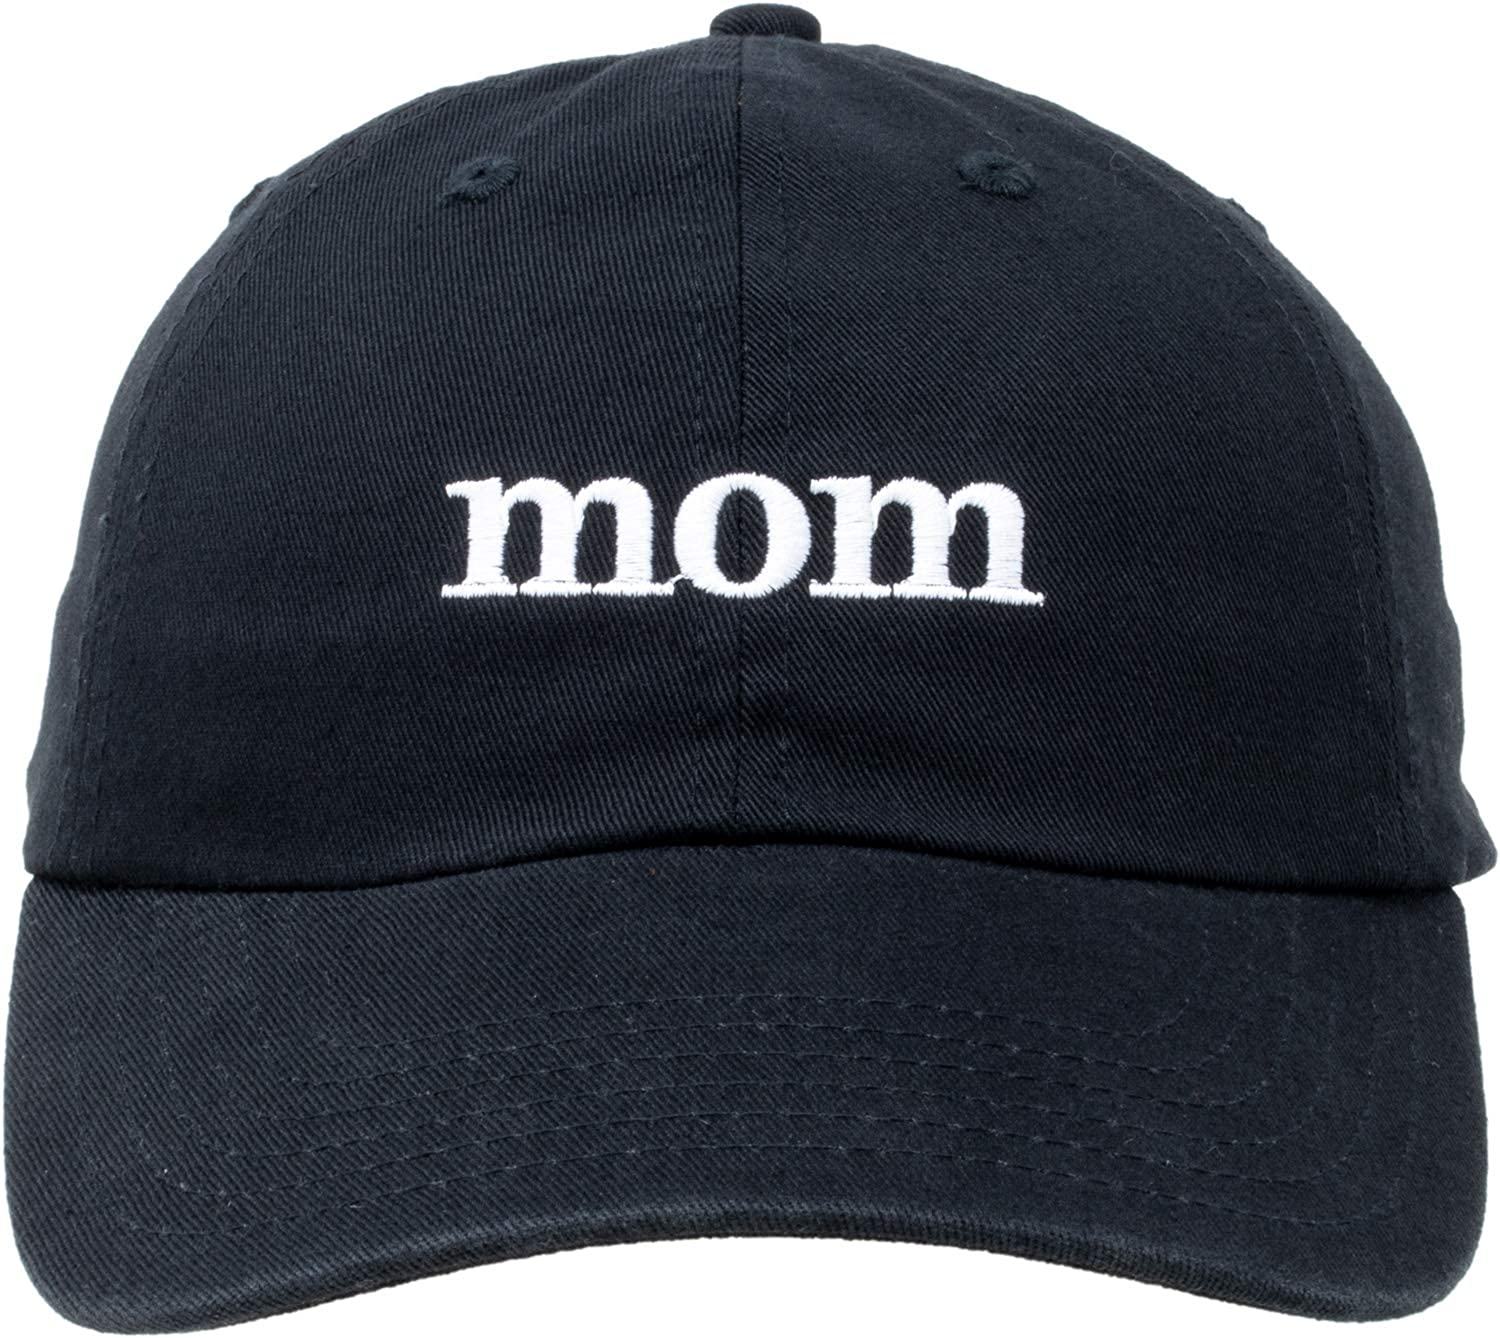 54b7e059d Mom Hat   Cute, Funny Fun Stitched Baseball Cap for Women Mothers Mommy  Wife Mrs